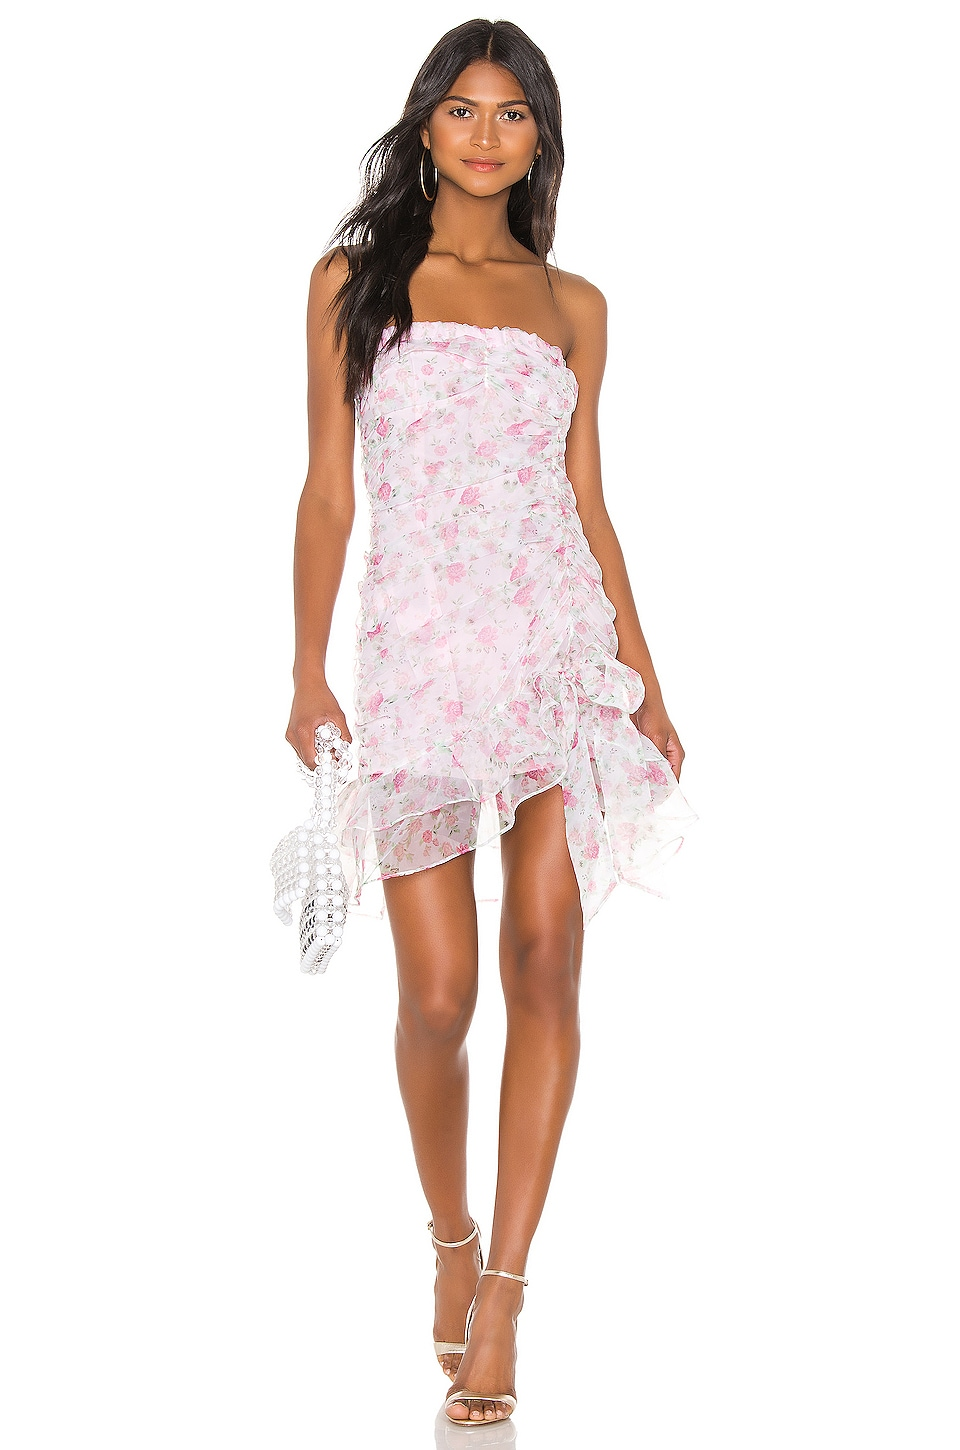 For Love & Lemons X REVOLVE Strapless Mini Dress in Pink & White Floral